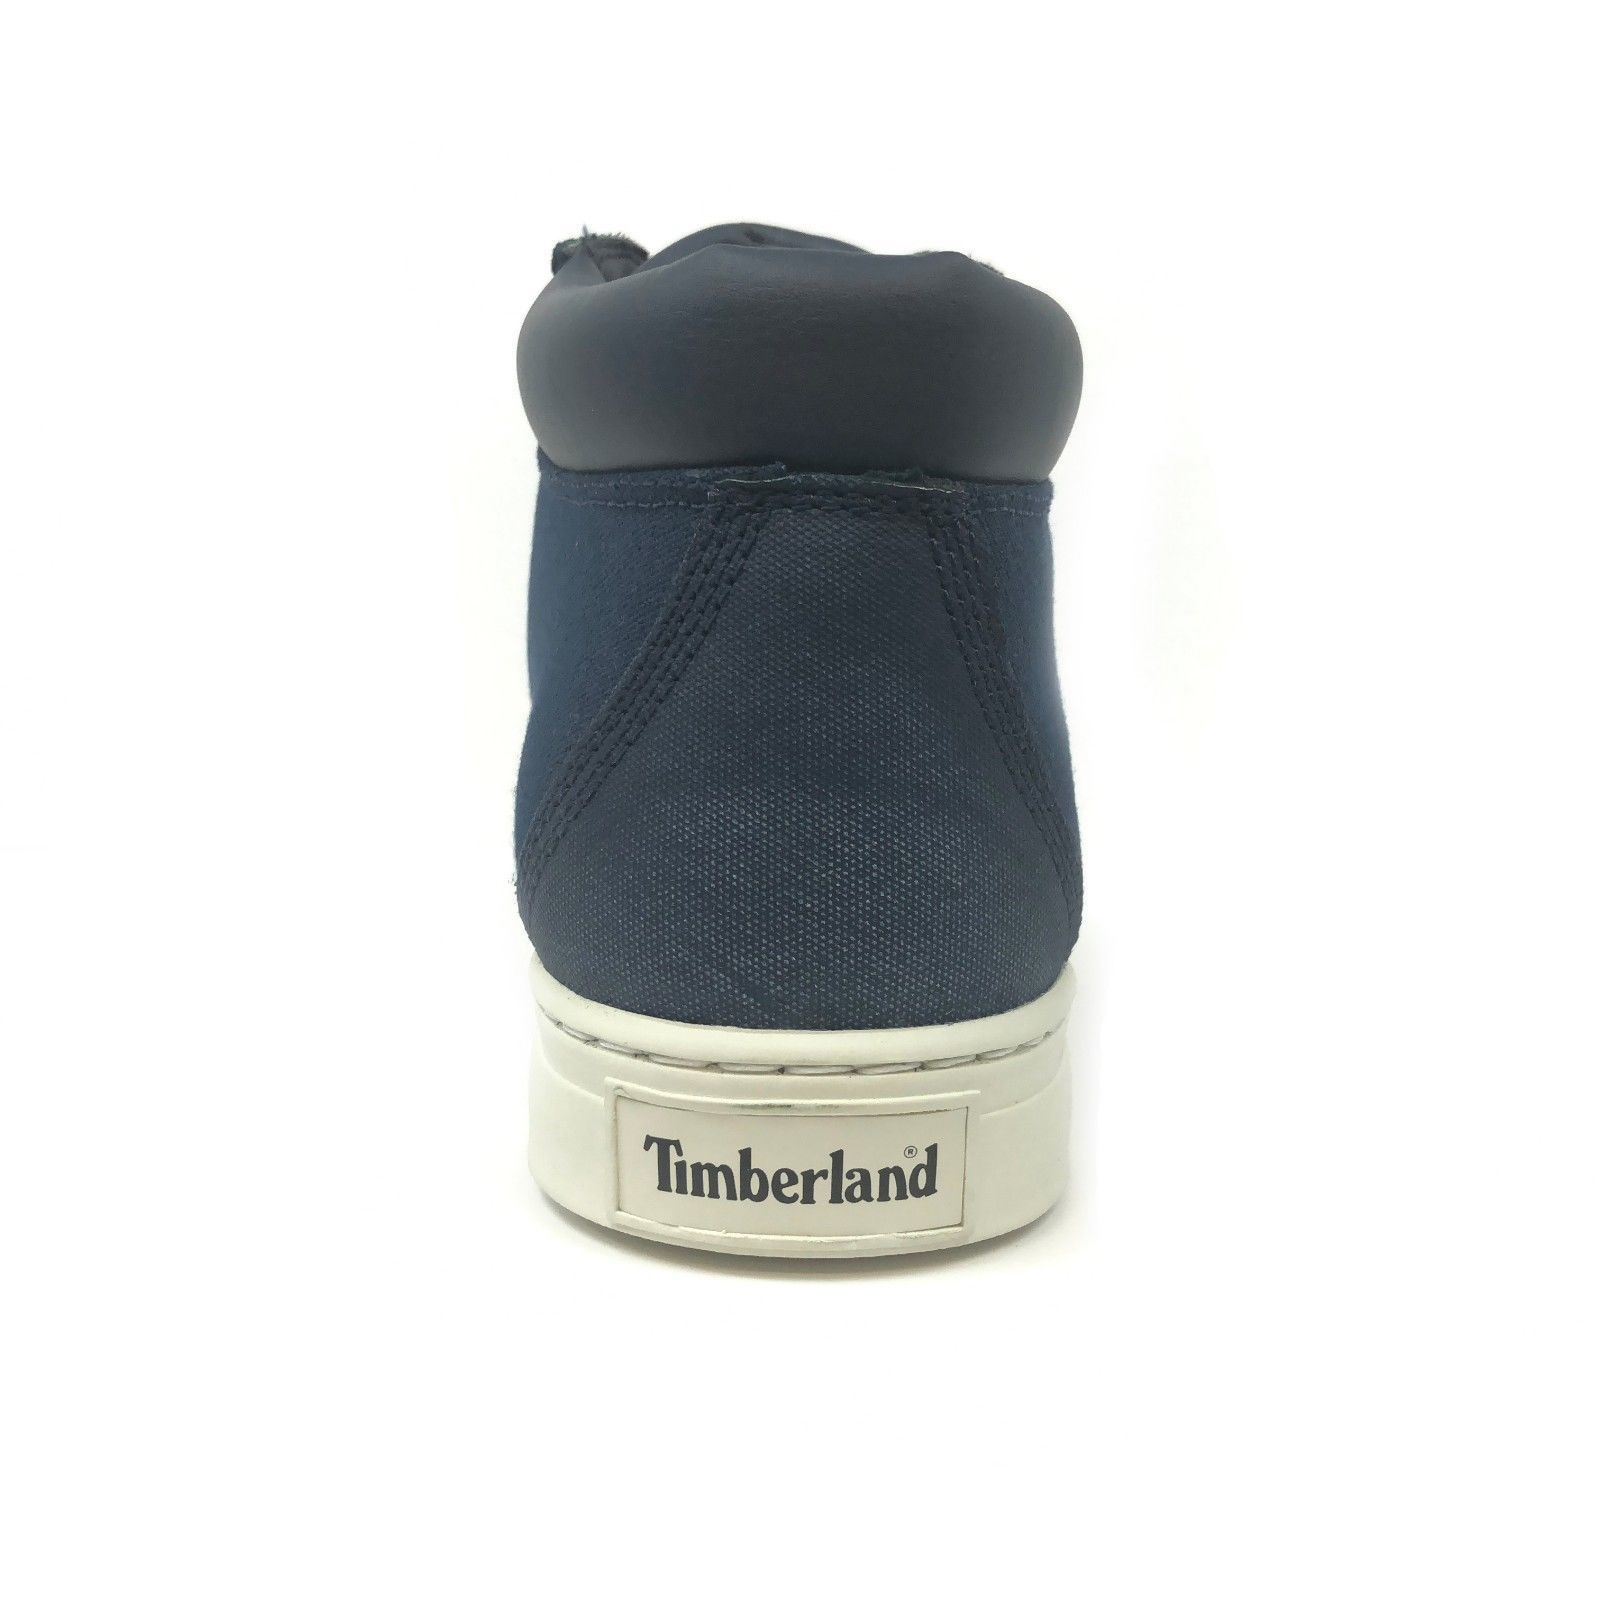 TIMBERLAND A1PFG DAUSET CUP SOLE MEN'S NAVY FABRICLEATHER